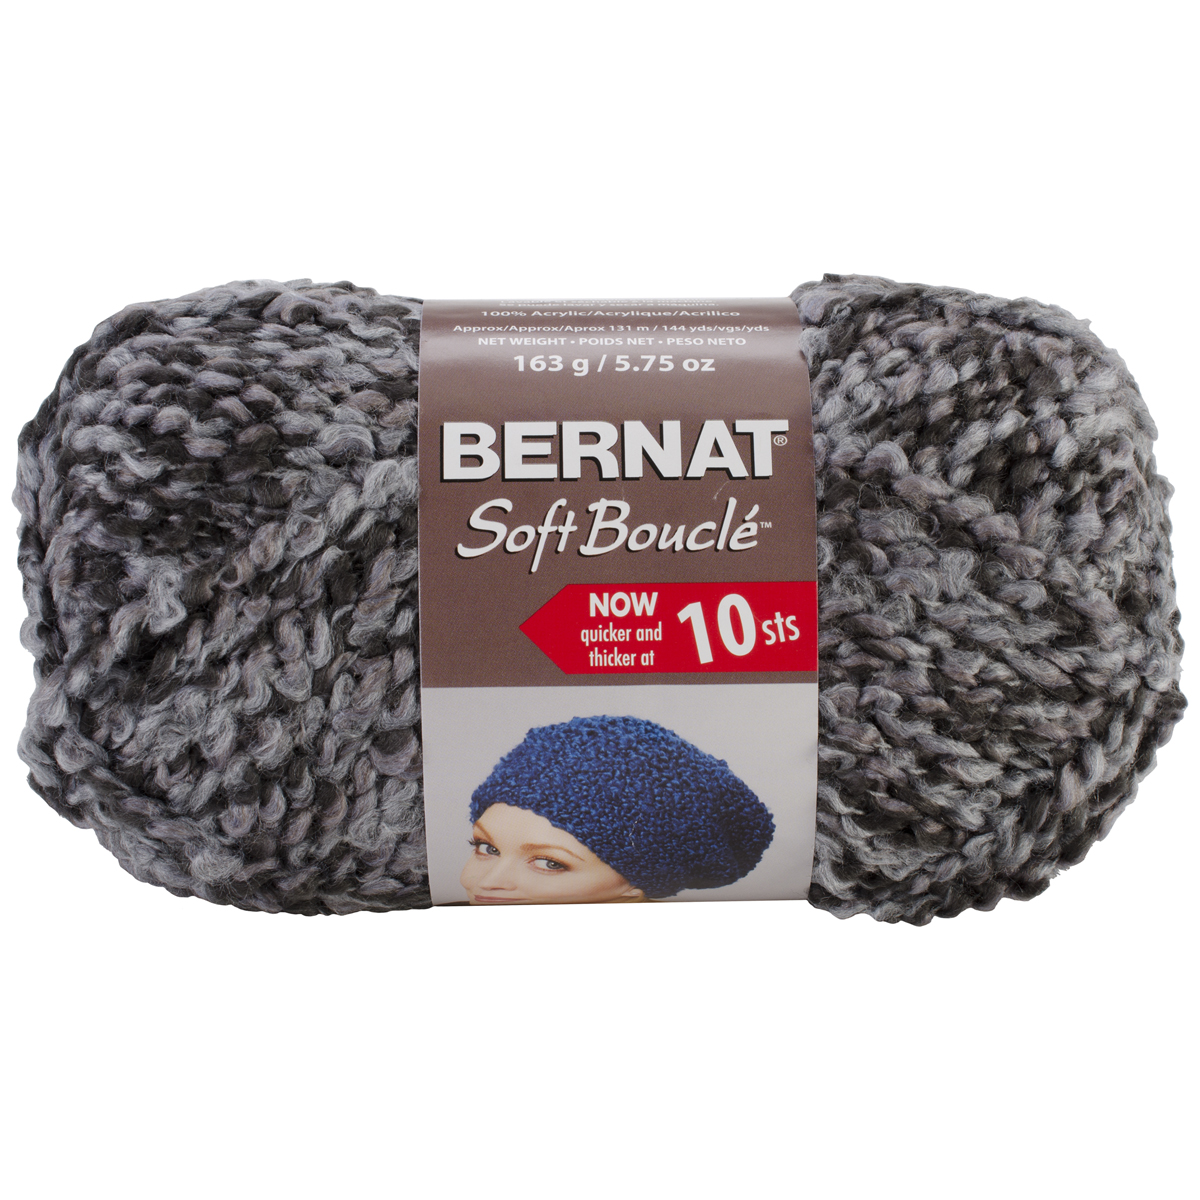 ... Soft Boucle Yarn ? Bernat Soft Boucle Yarn Super Bulky Grey Shades